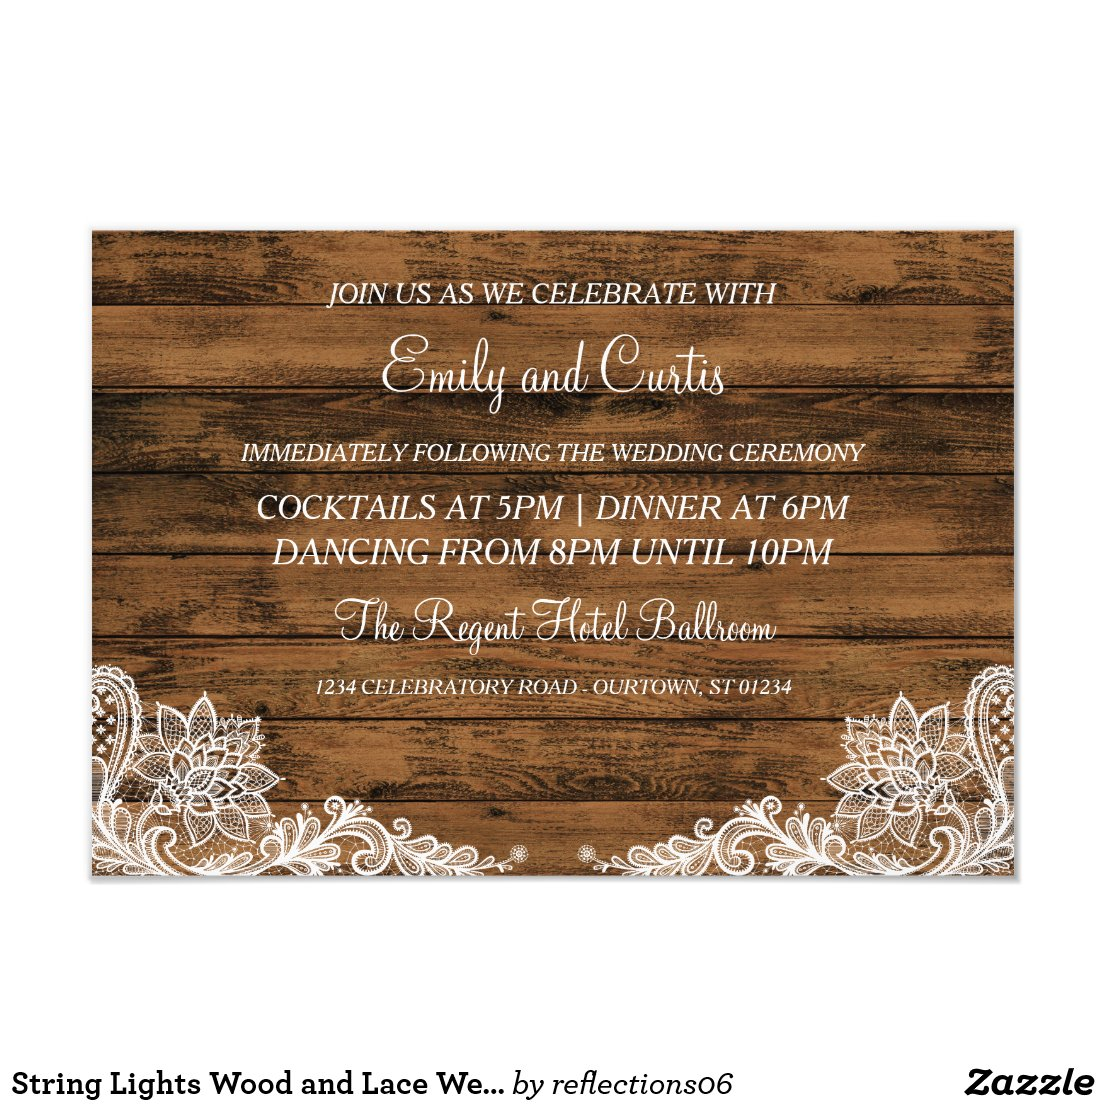 String Lights Wood and Lace Wedding Reception Card